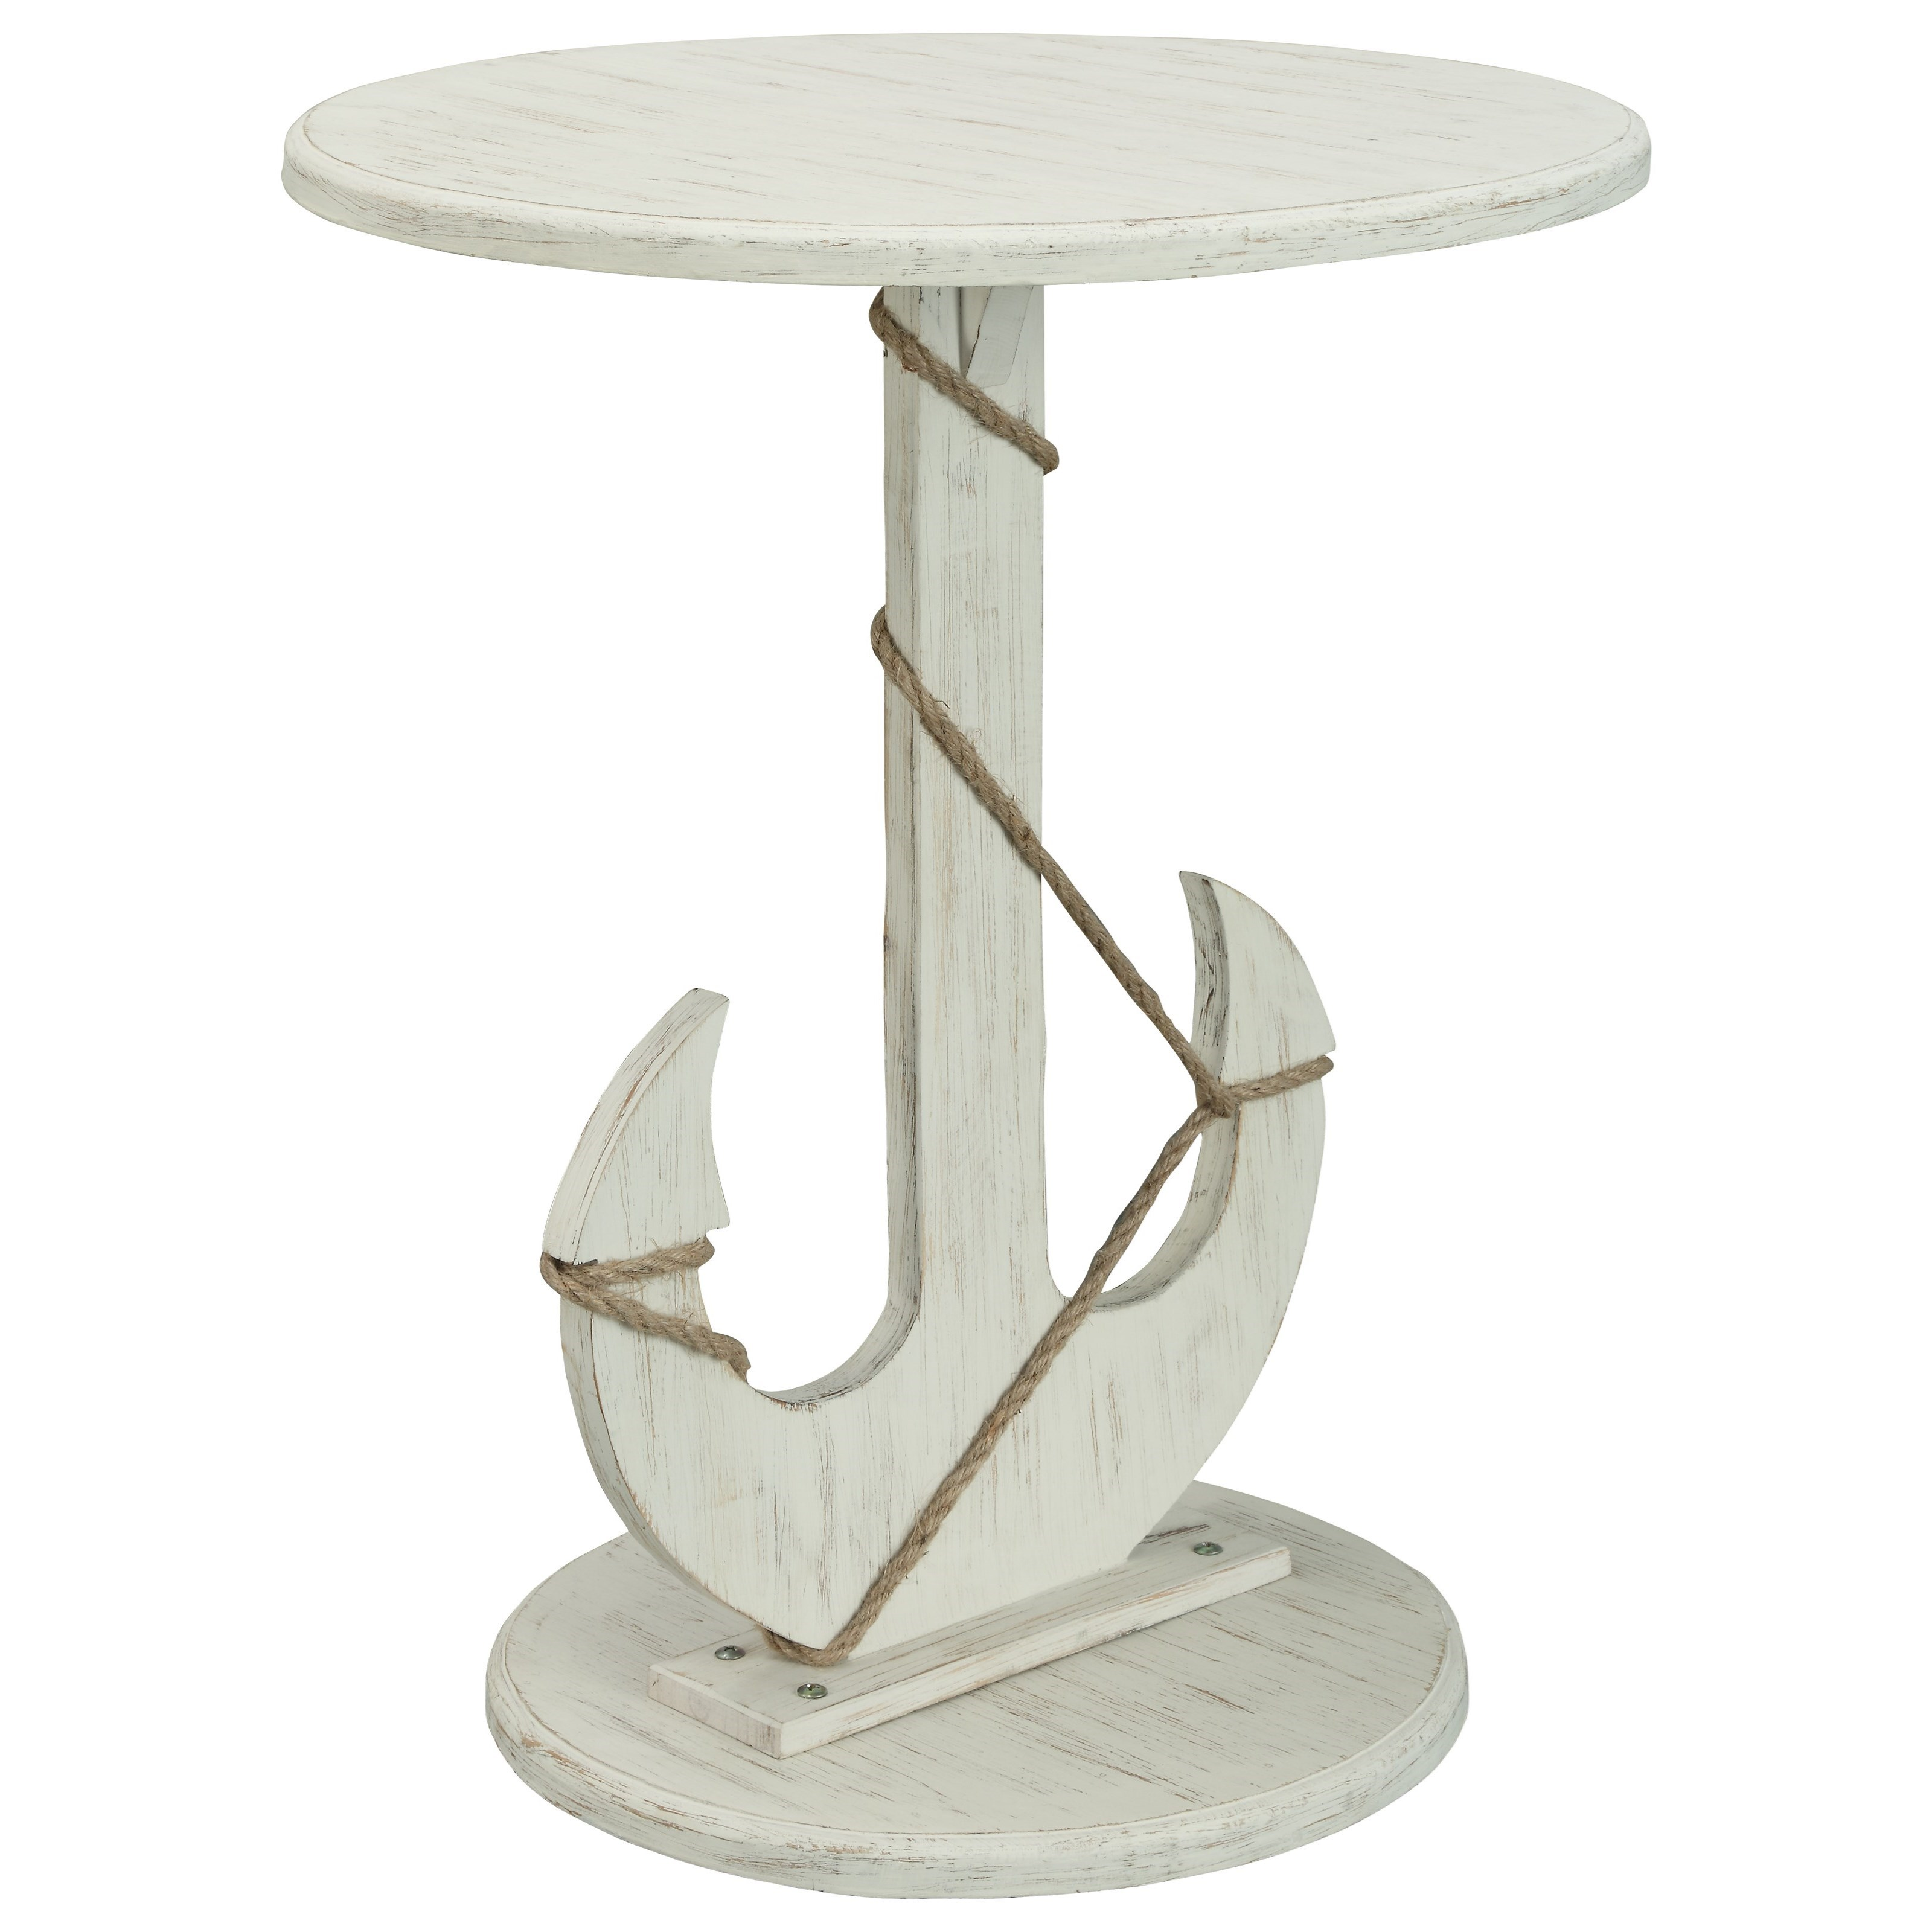 Sanibel Anchor Table by Coast to Coast Imports at Baer's Furniture